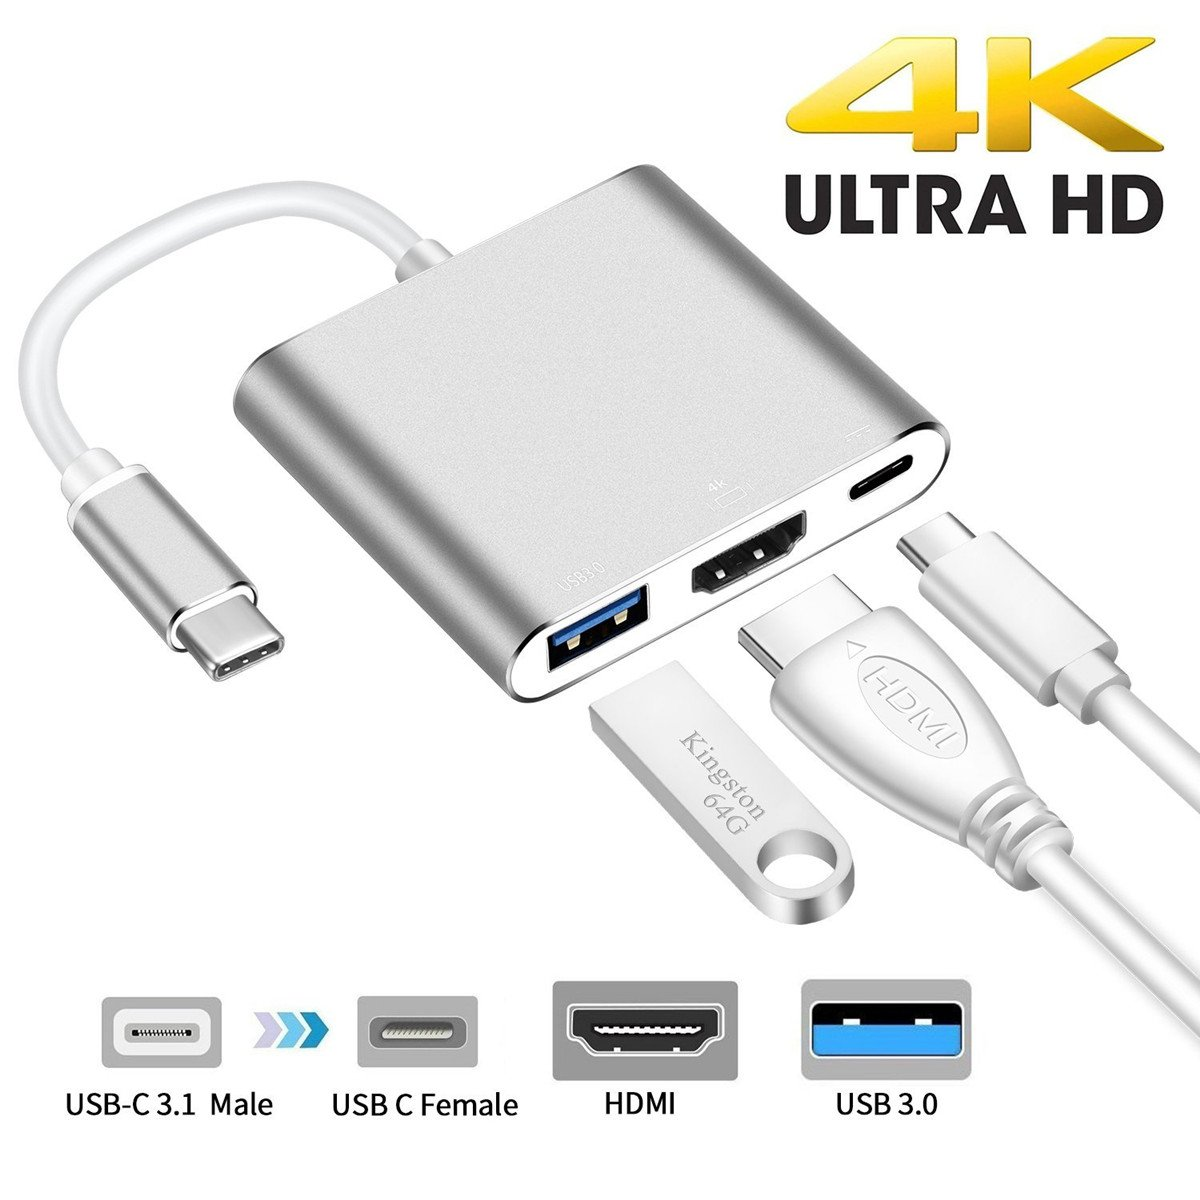 USB C to HDMI Digital Multiport Hub Adapter -321OU Type-C to HDMI 4K Adapter with USB 3.0 & USB-C 3.1 Power Delivery for MacBook12 MacBook Pro13 15 (2016 2017) Google Chromebook Samsung S9/S8 (Silver)